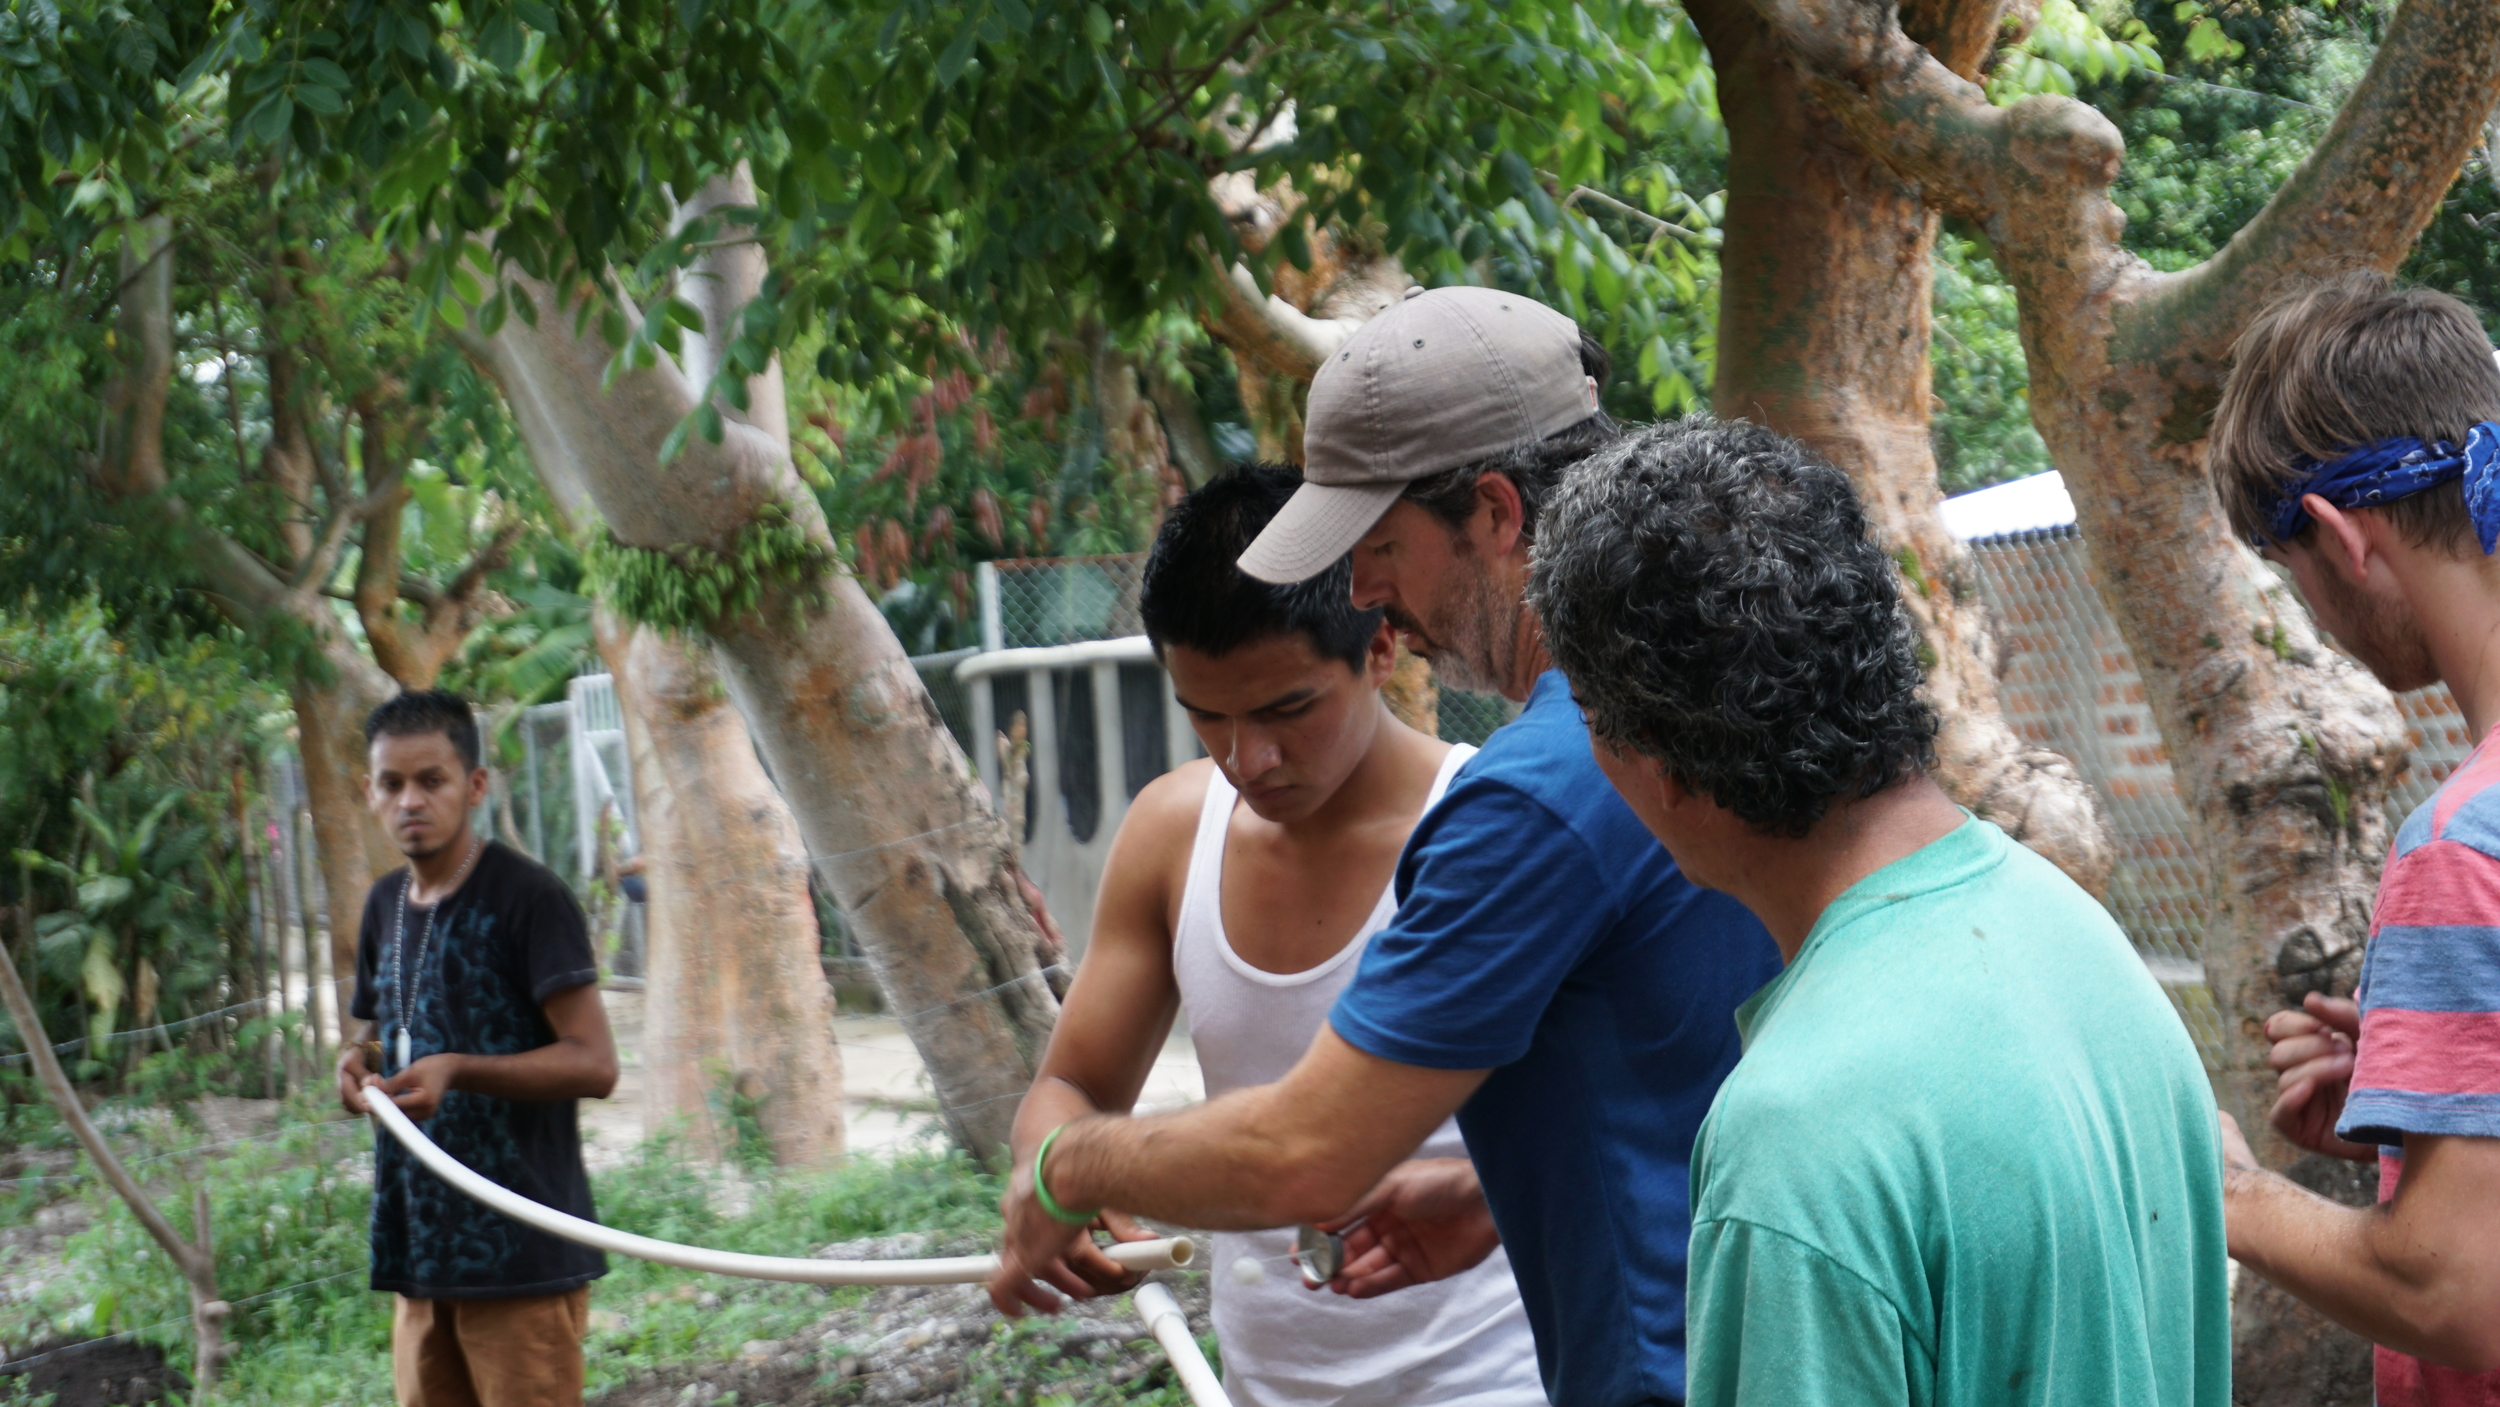 Billy Fly (blue shirt) works with Salvadoran youth to help connect the water line that will run to Noe's (green shirt) house to give him running water.